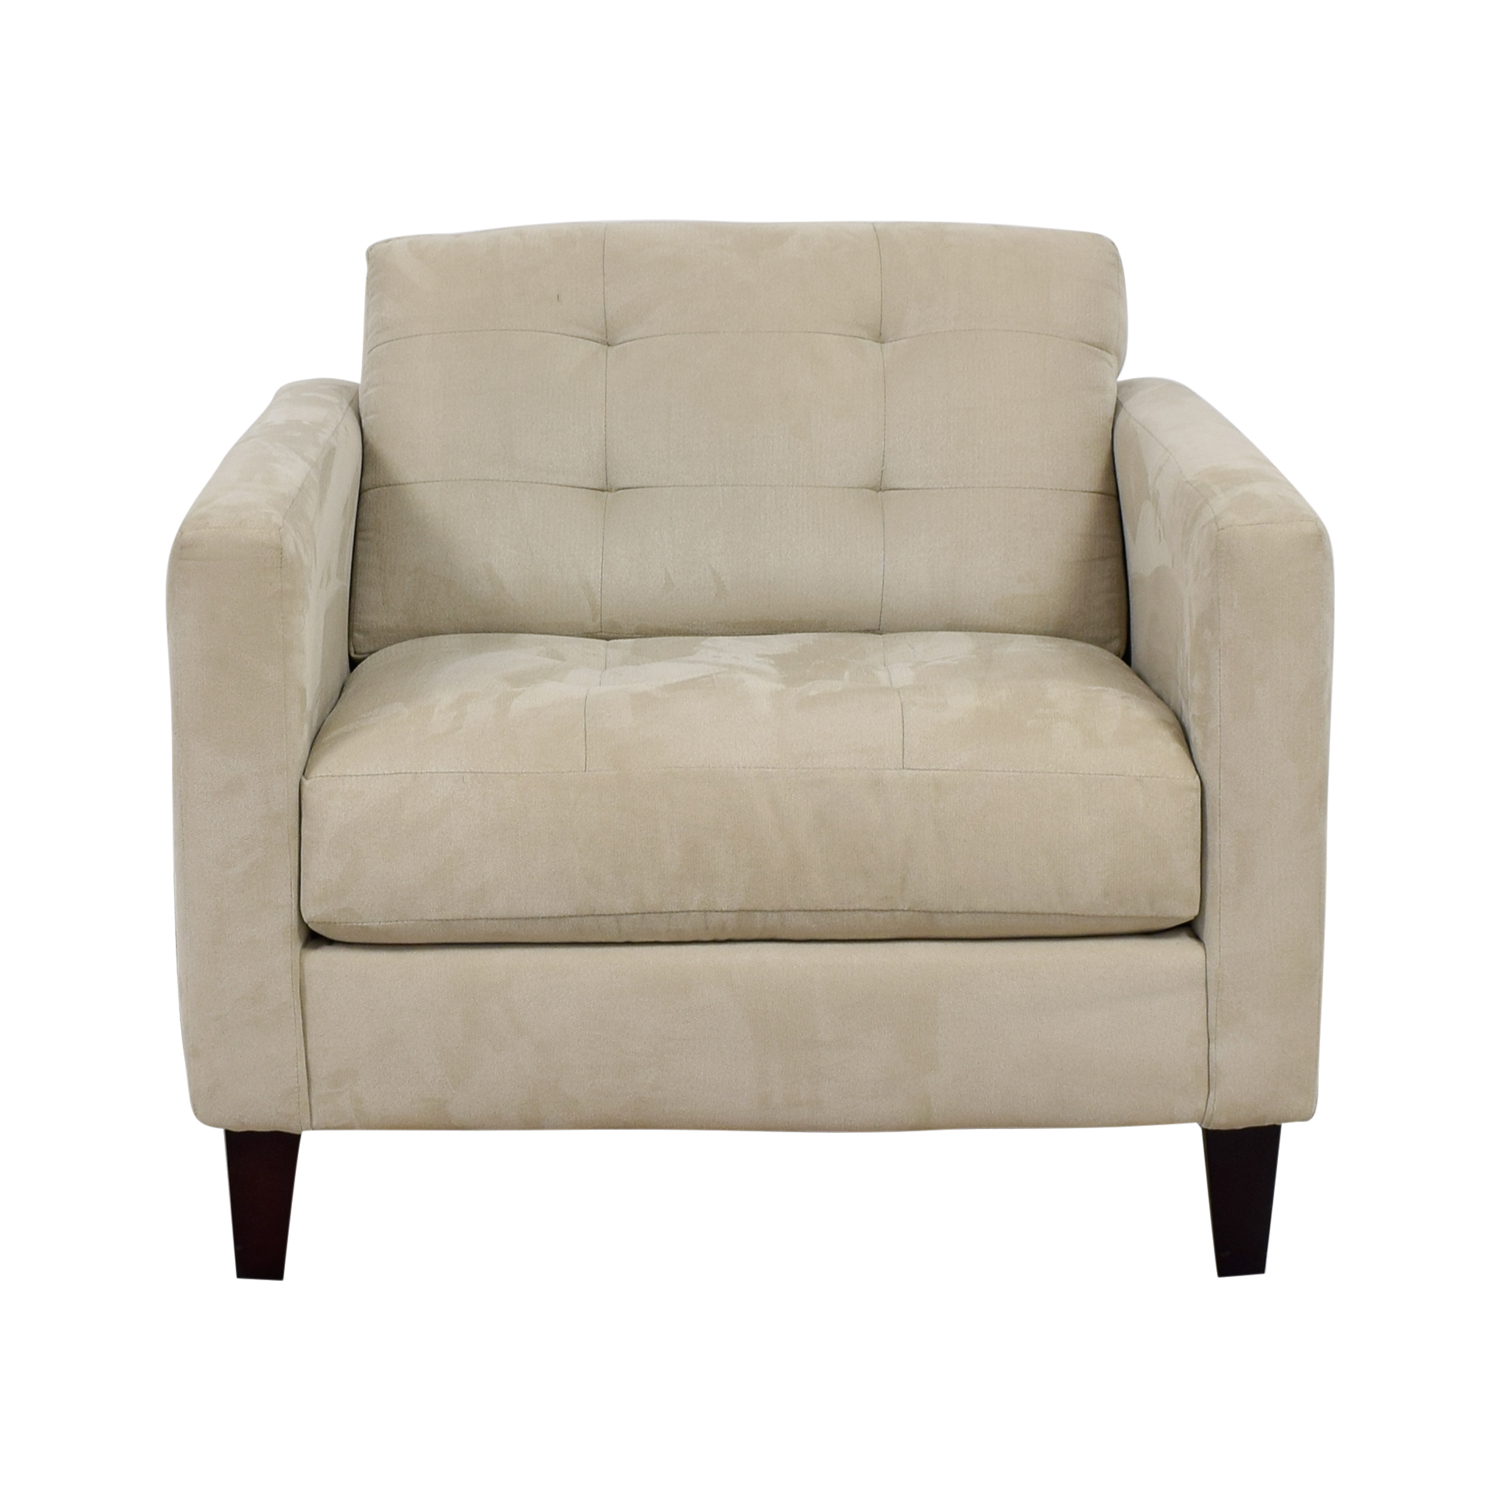 shop Macy's Macy's Beige Tufted Accent Armchair online